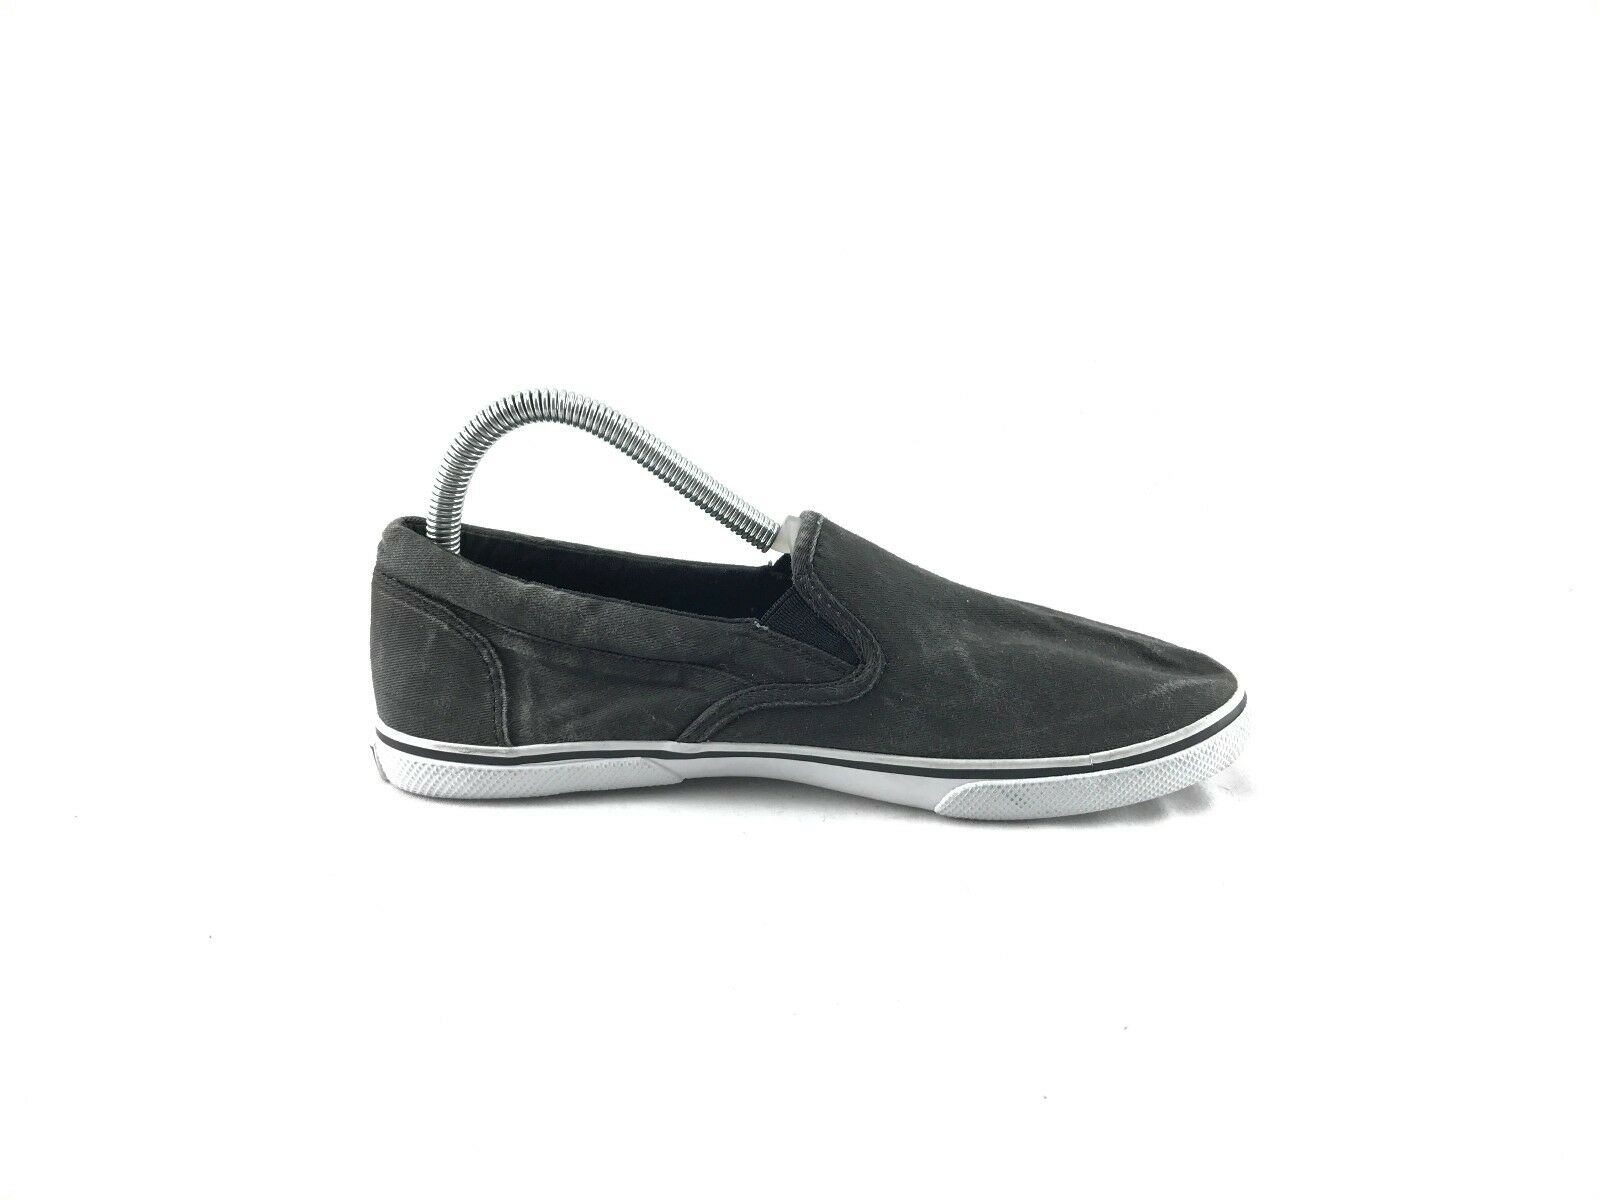 NEW Sperry Top-Sider Halyard Men's Grey Slip On Loafers Shoes US Size 5 M Shoes Loafers #913 b6b0ca